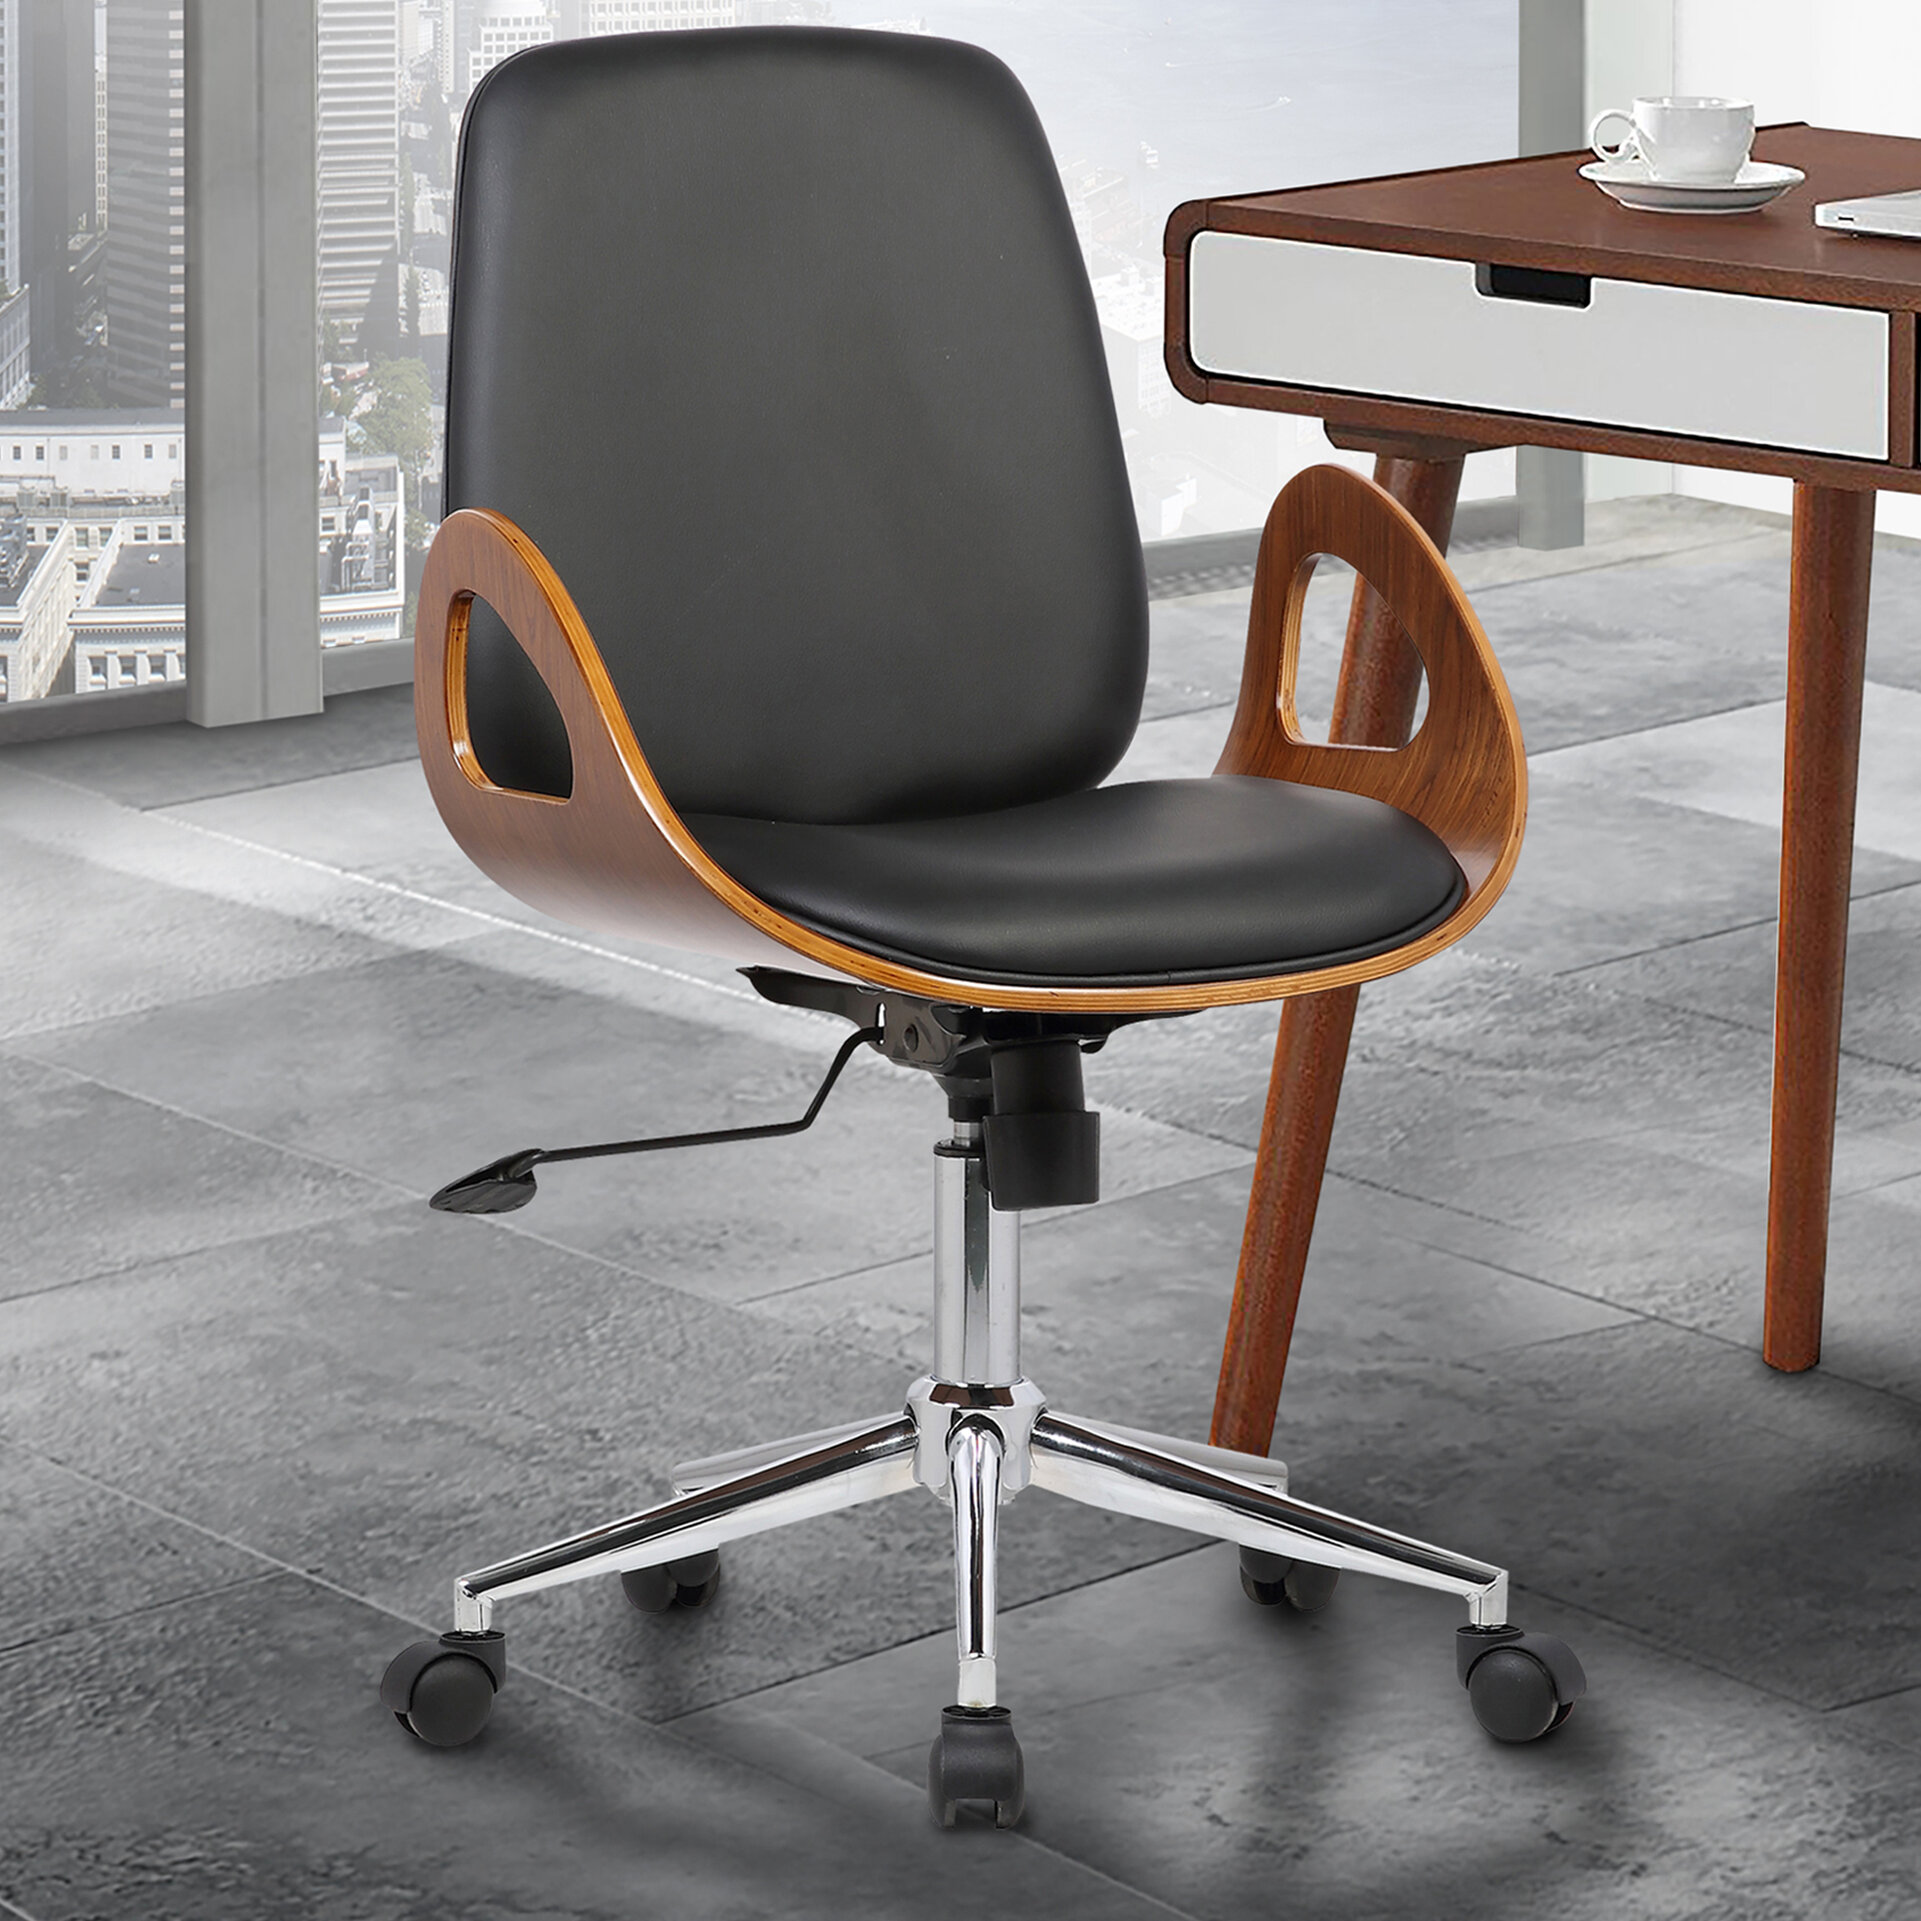 Sweetwater task chair reviews